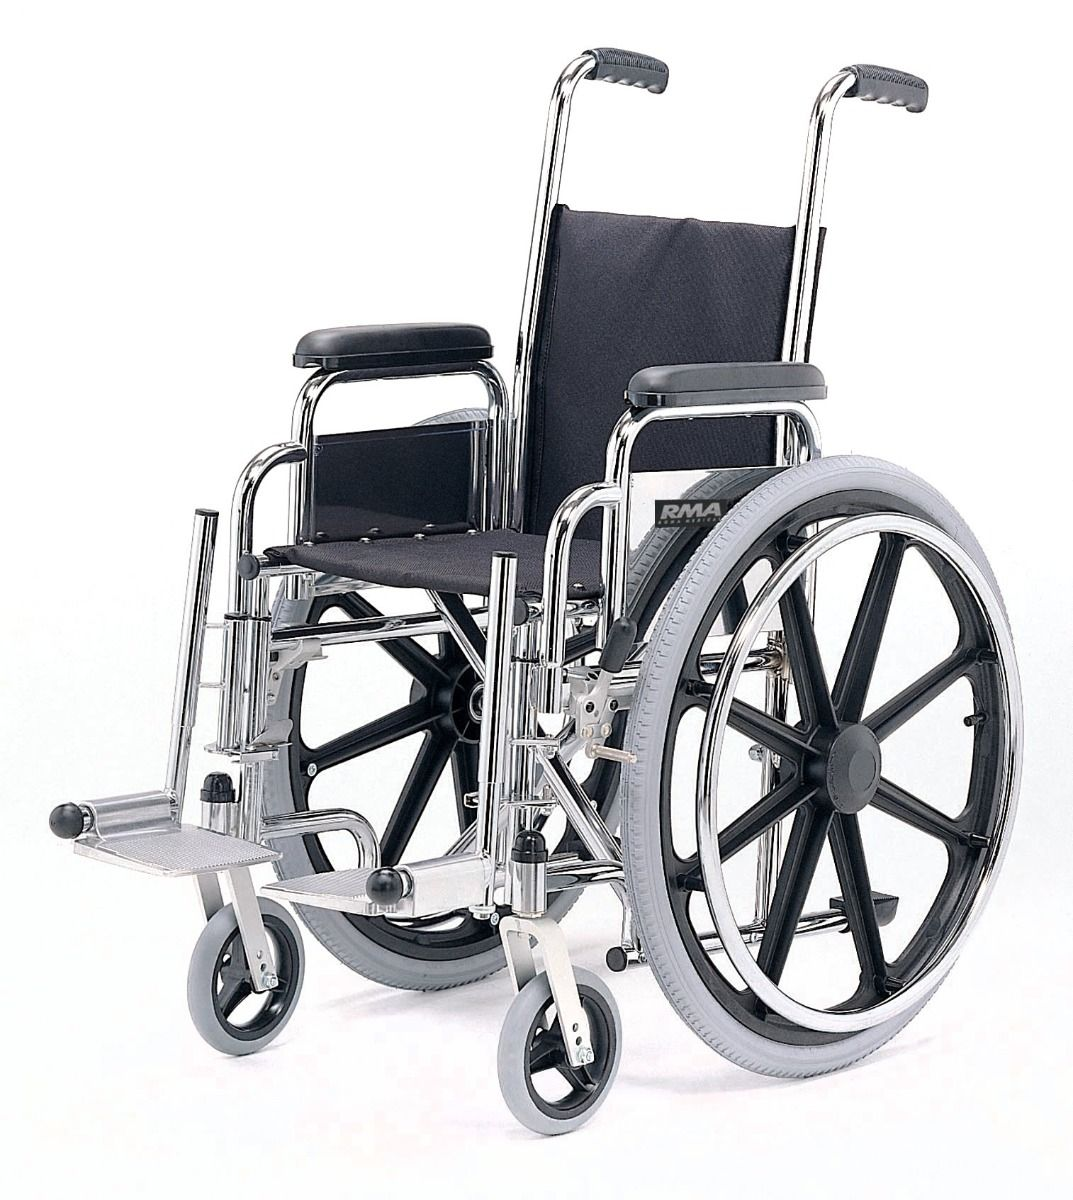 Side view of the Roma Medical 1451 paediatric self propelled wheelchair with chrome frame